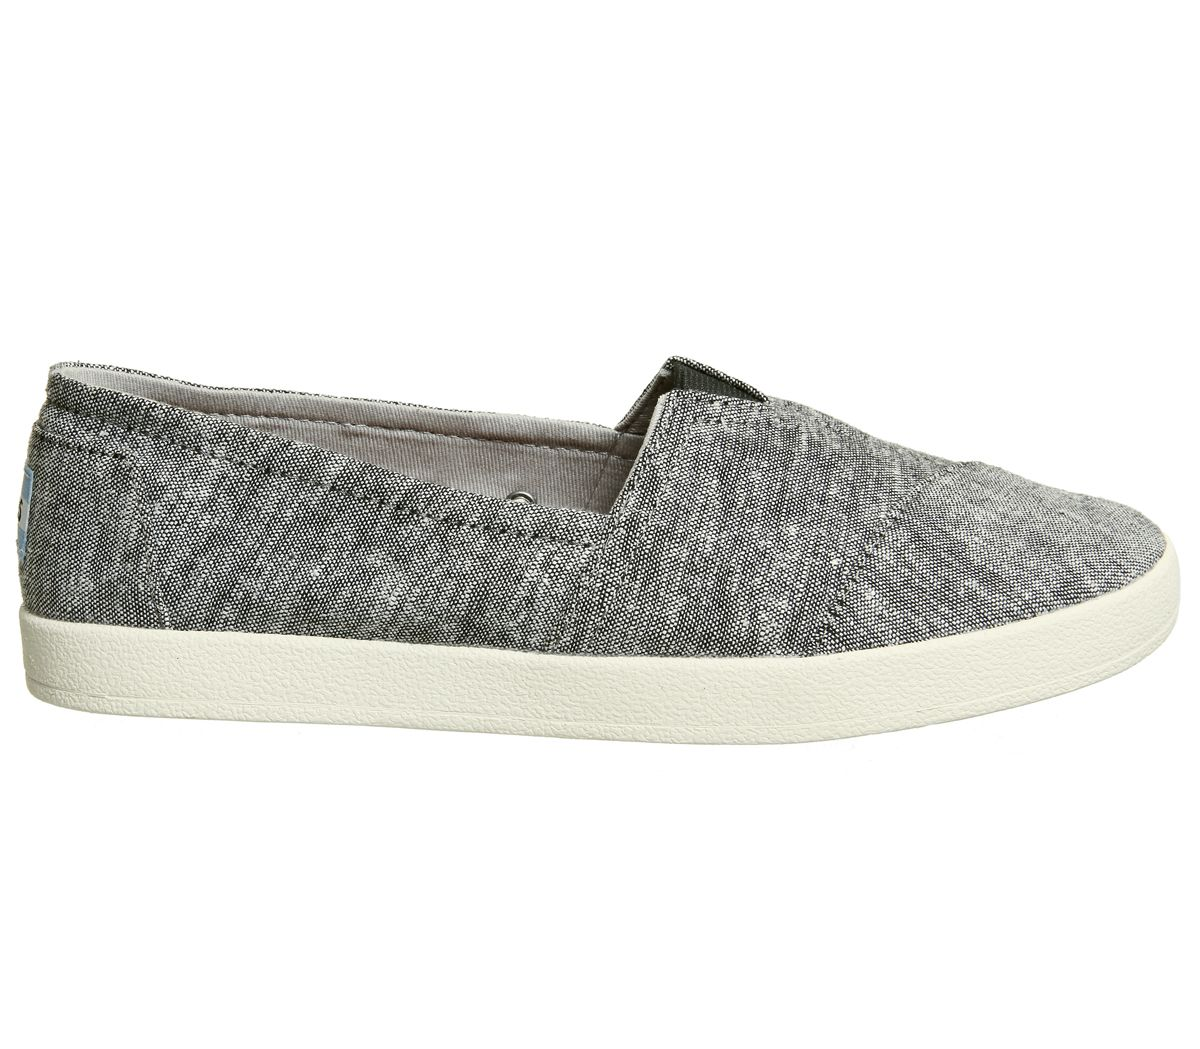 Womens-Toms-Avalon-Sneakers-Black-Slub-Chambray-Flats thumbnail 5